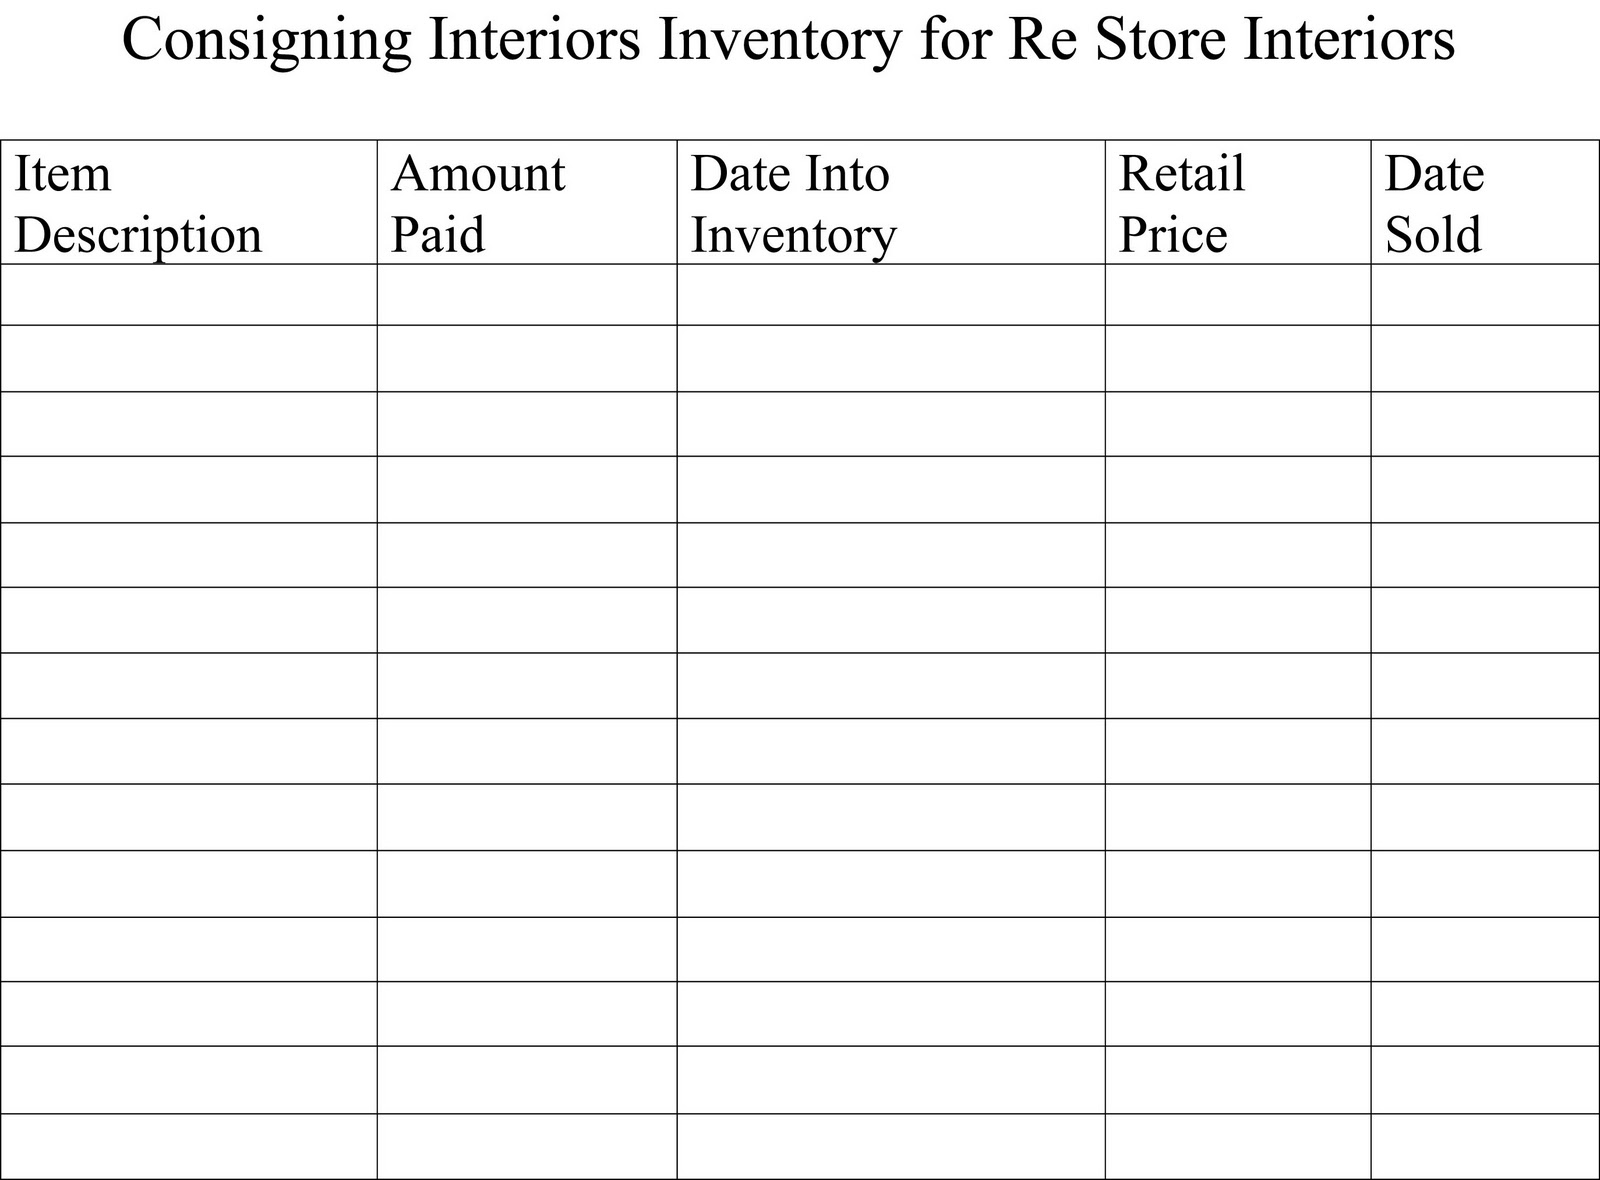 INVENTORY SHEETS AND MY BOOTH - How to organize invoices on excel online thrift store furniture